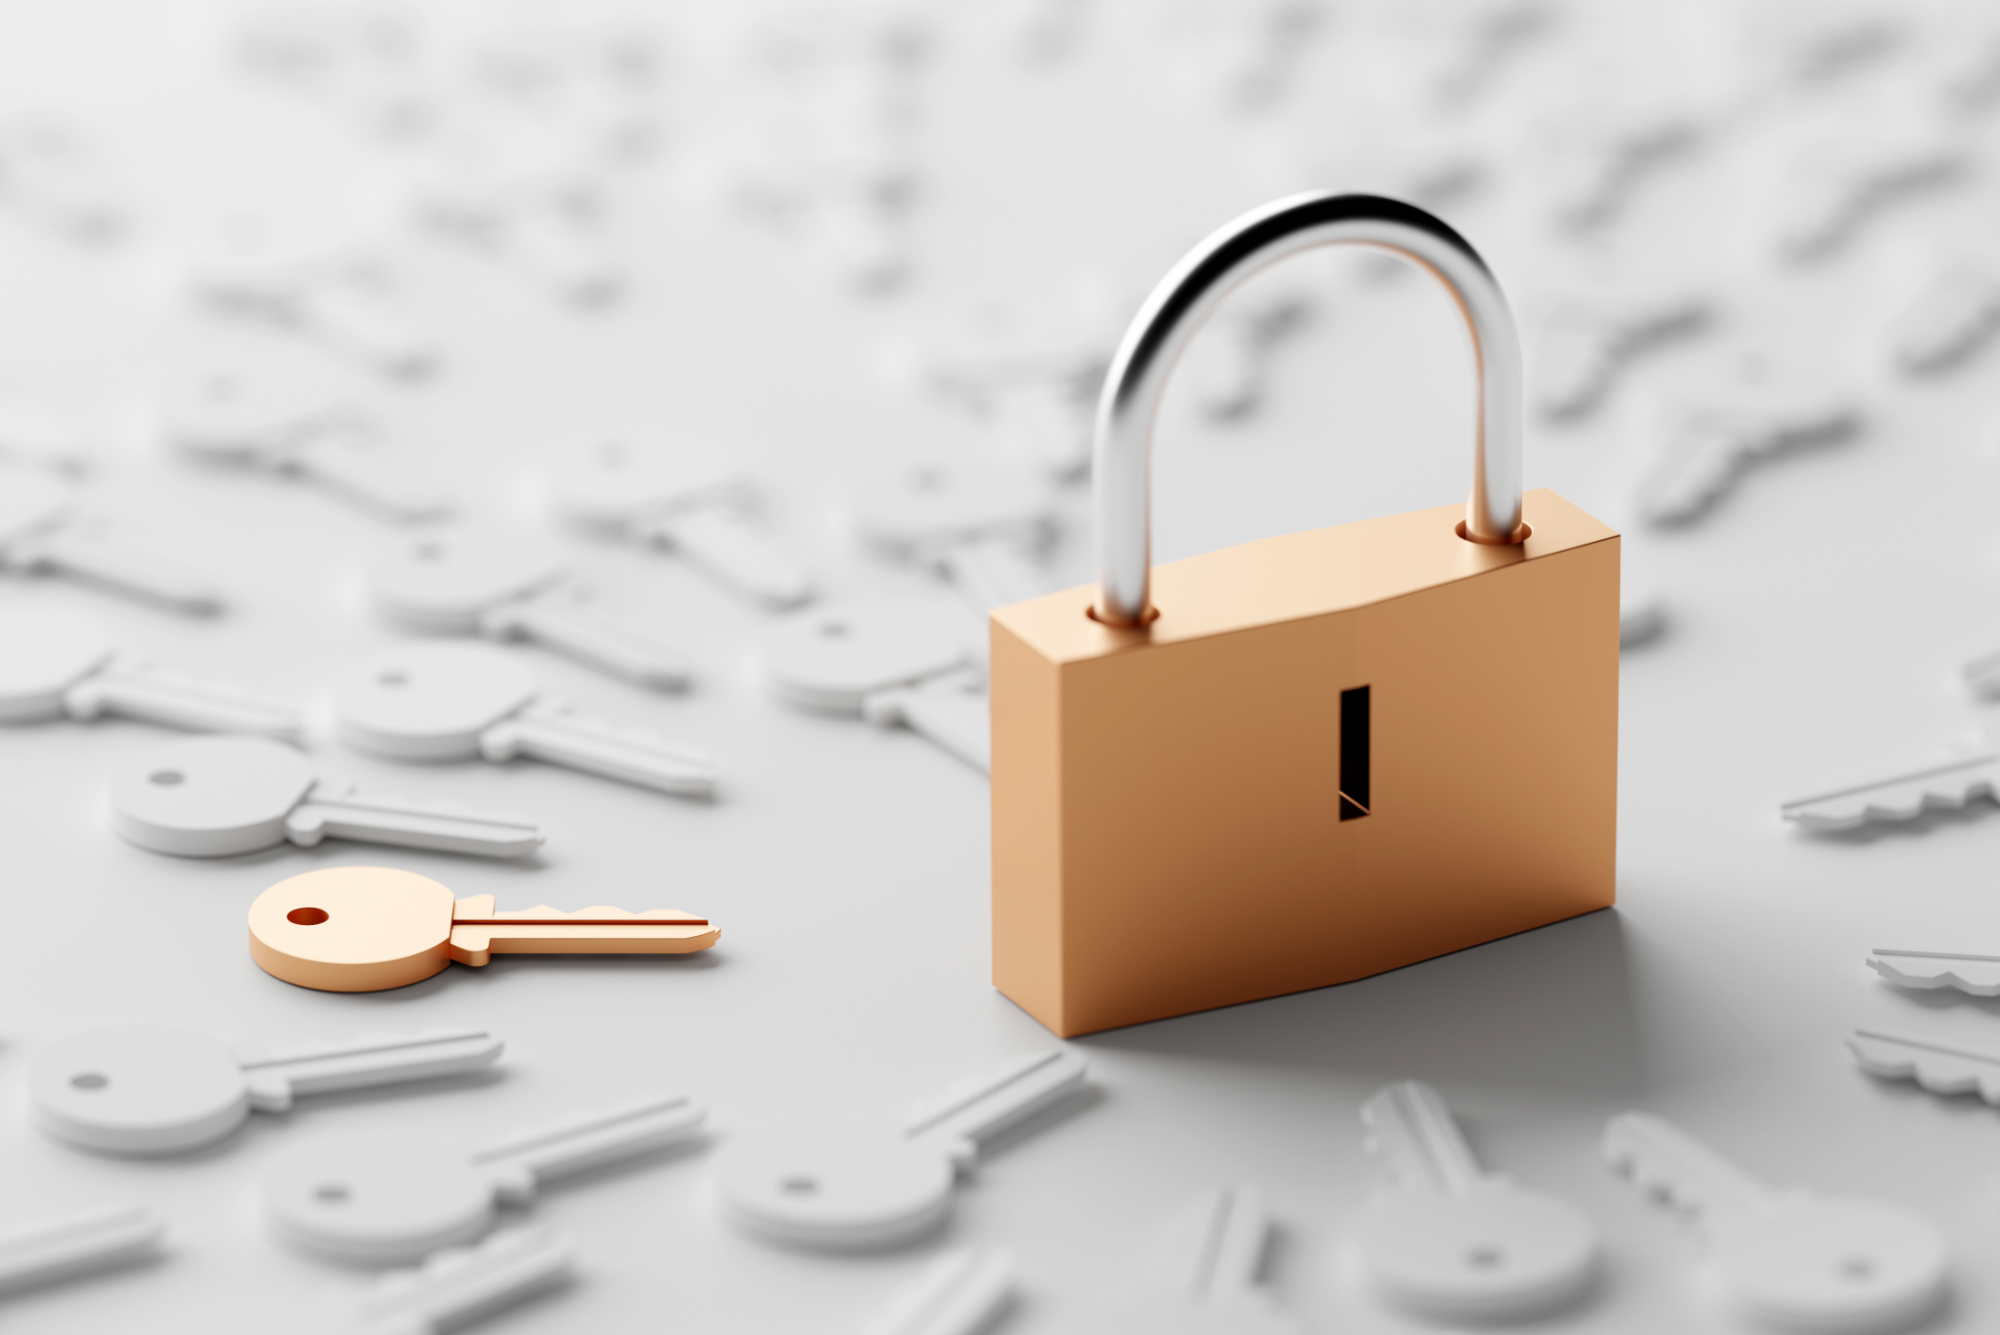 Our Top Tips For Securing Your Online Accounts